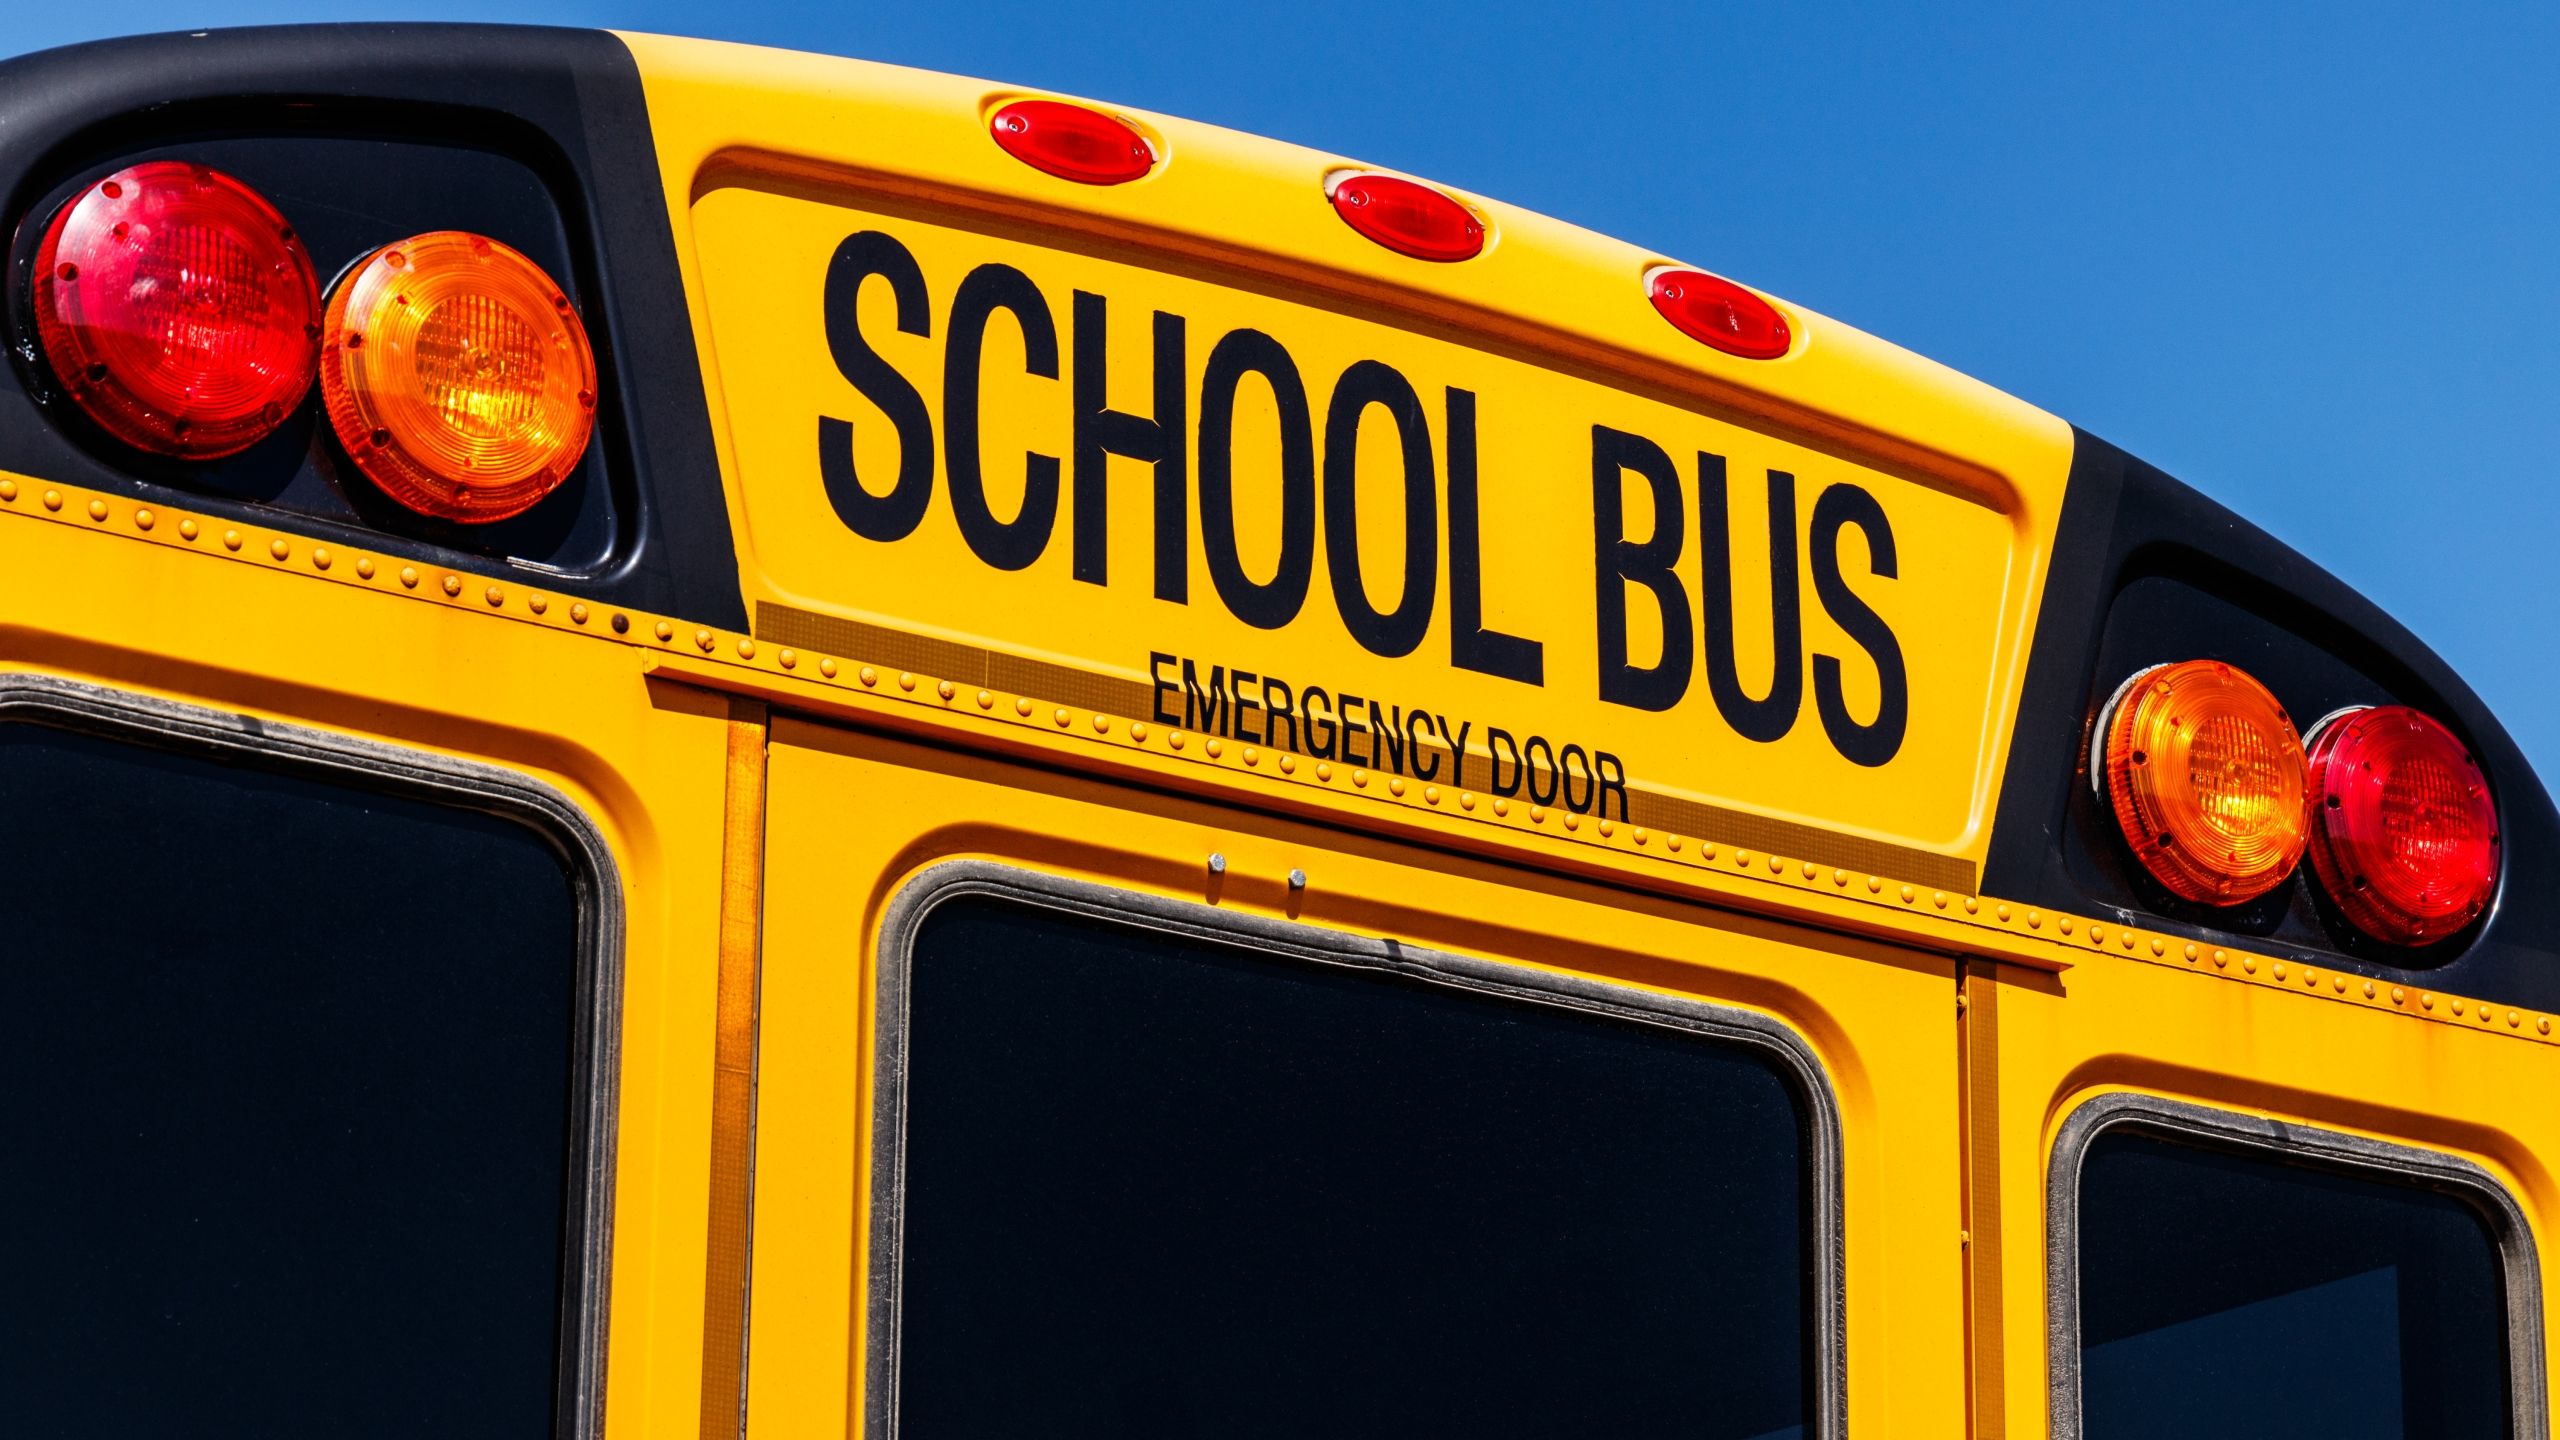 A school bus is shown in a file image. (Credit: iStock / Getty Images Plus)